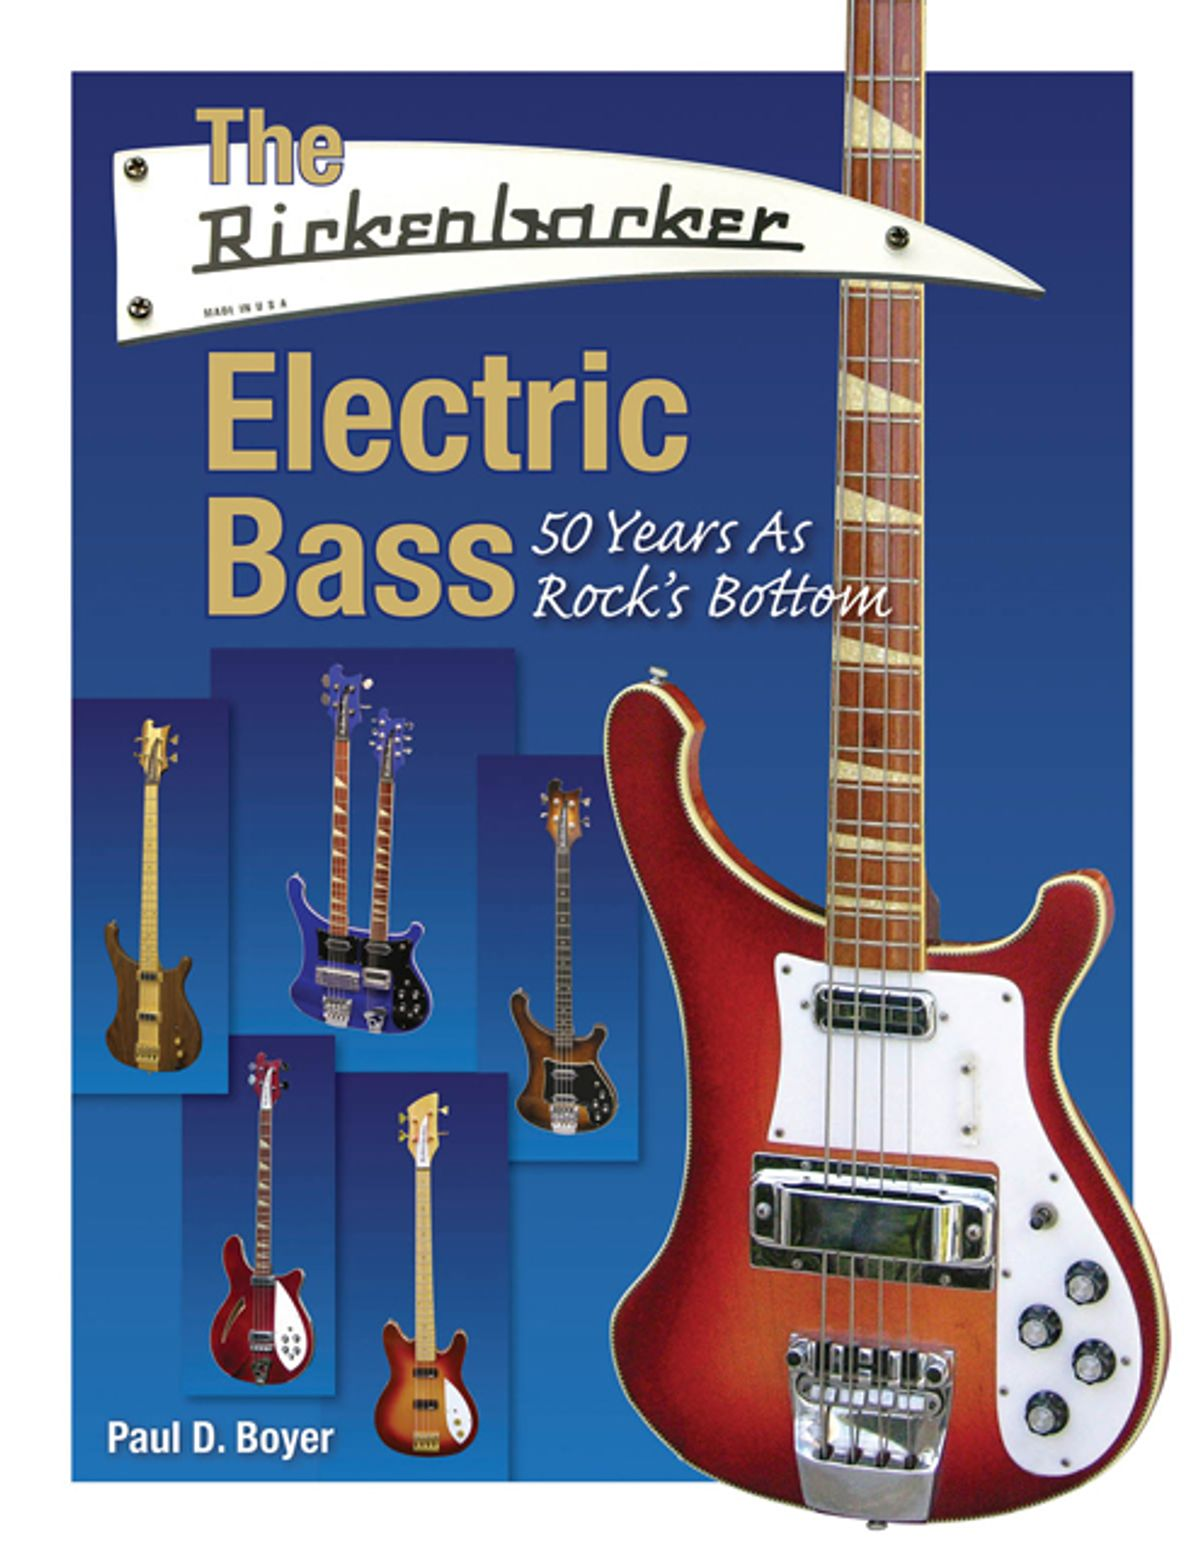 """Hal Leonard Publishes """"The Rickenbacker Electric Bass - 50 Years as Rock's Bottom"""" Book"""